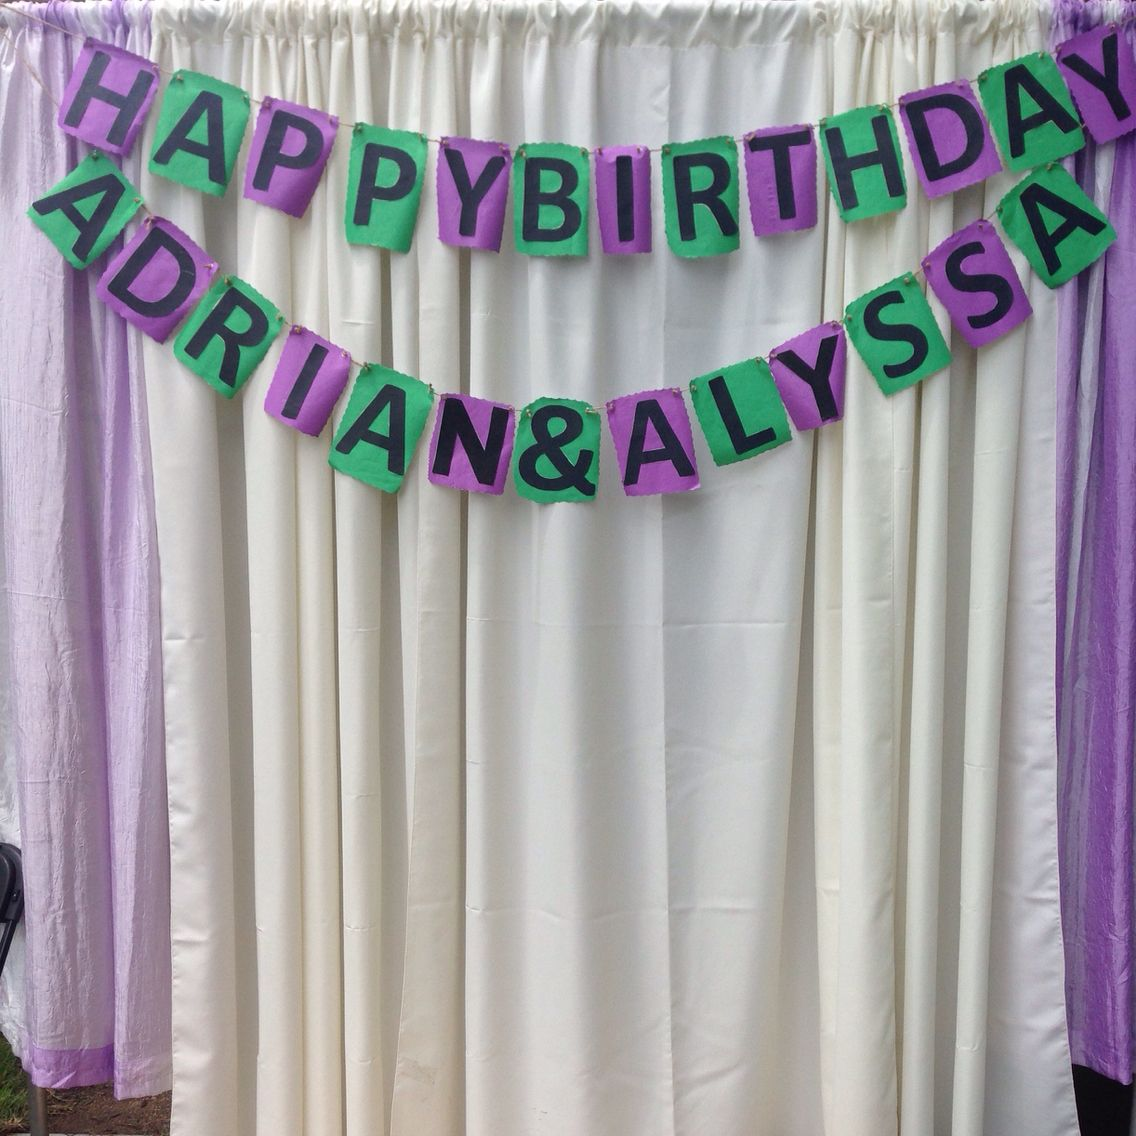 Happy birthday banner Green & purple   Made by evy